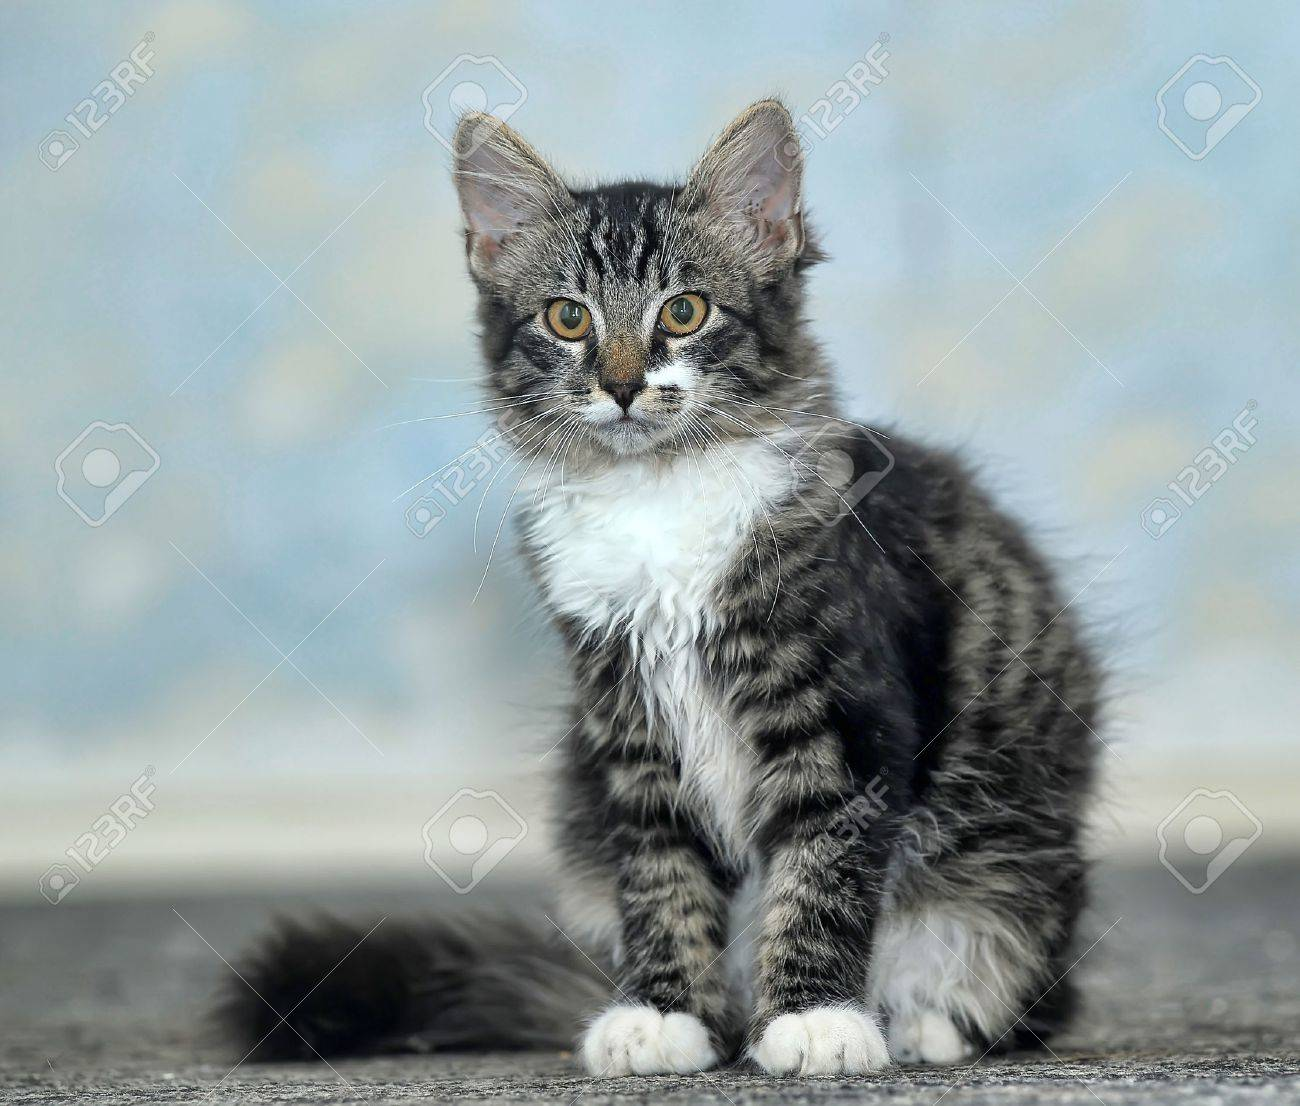 Maine coon at 4 months